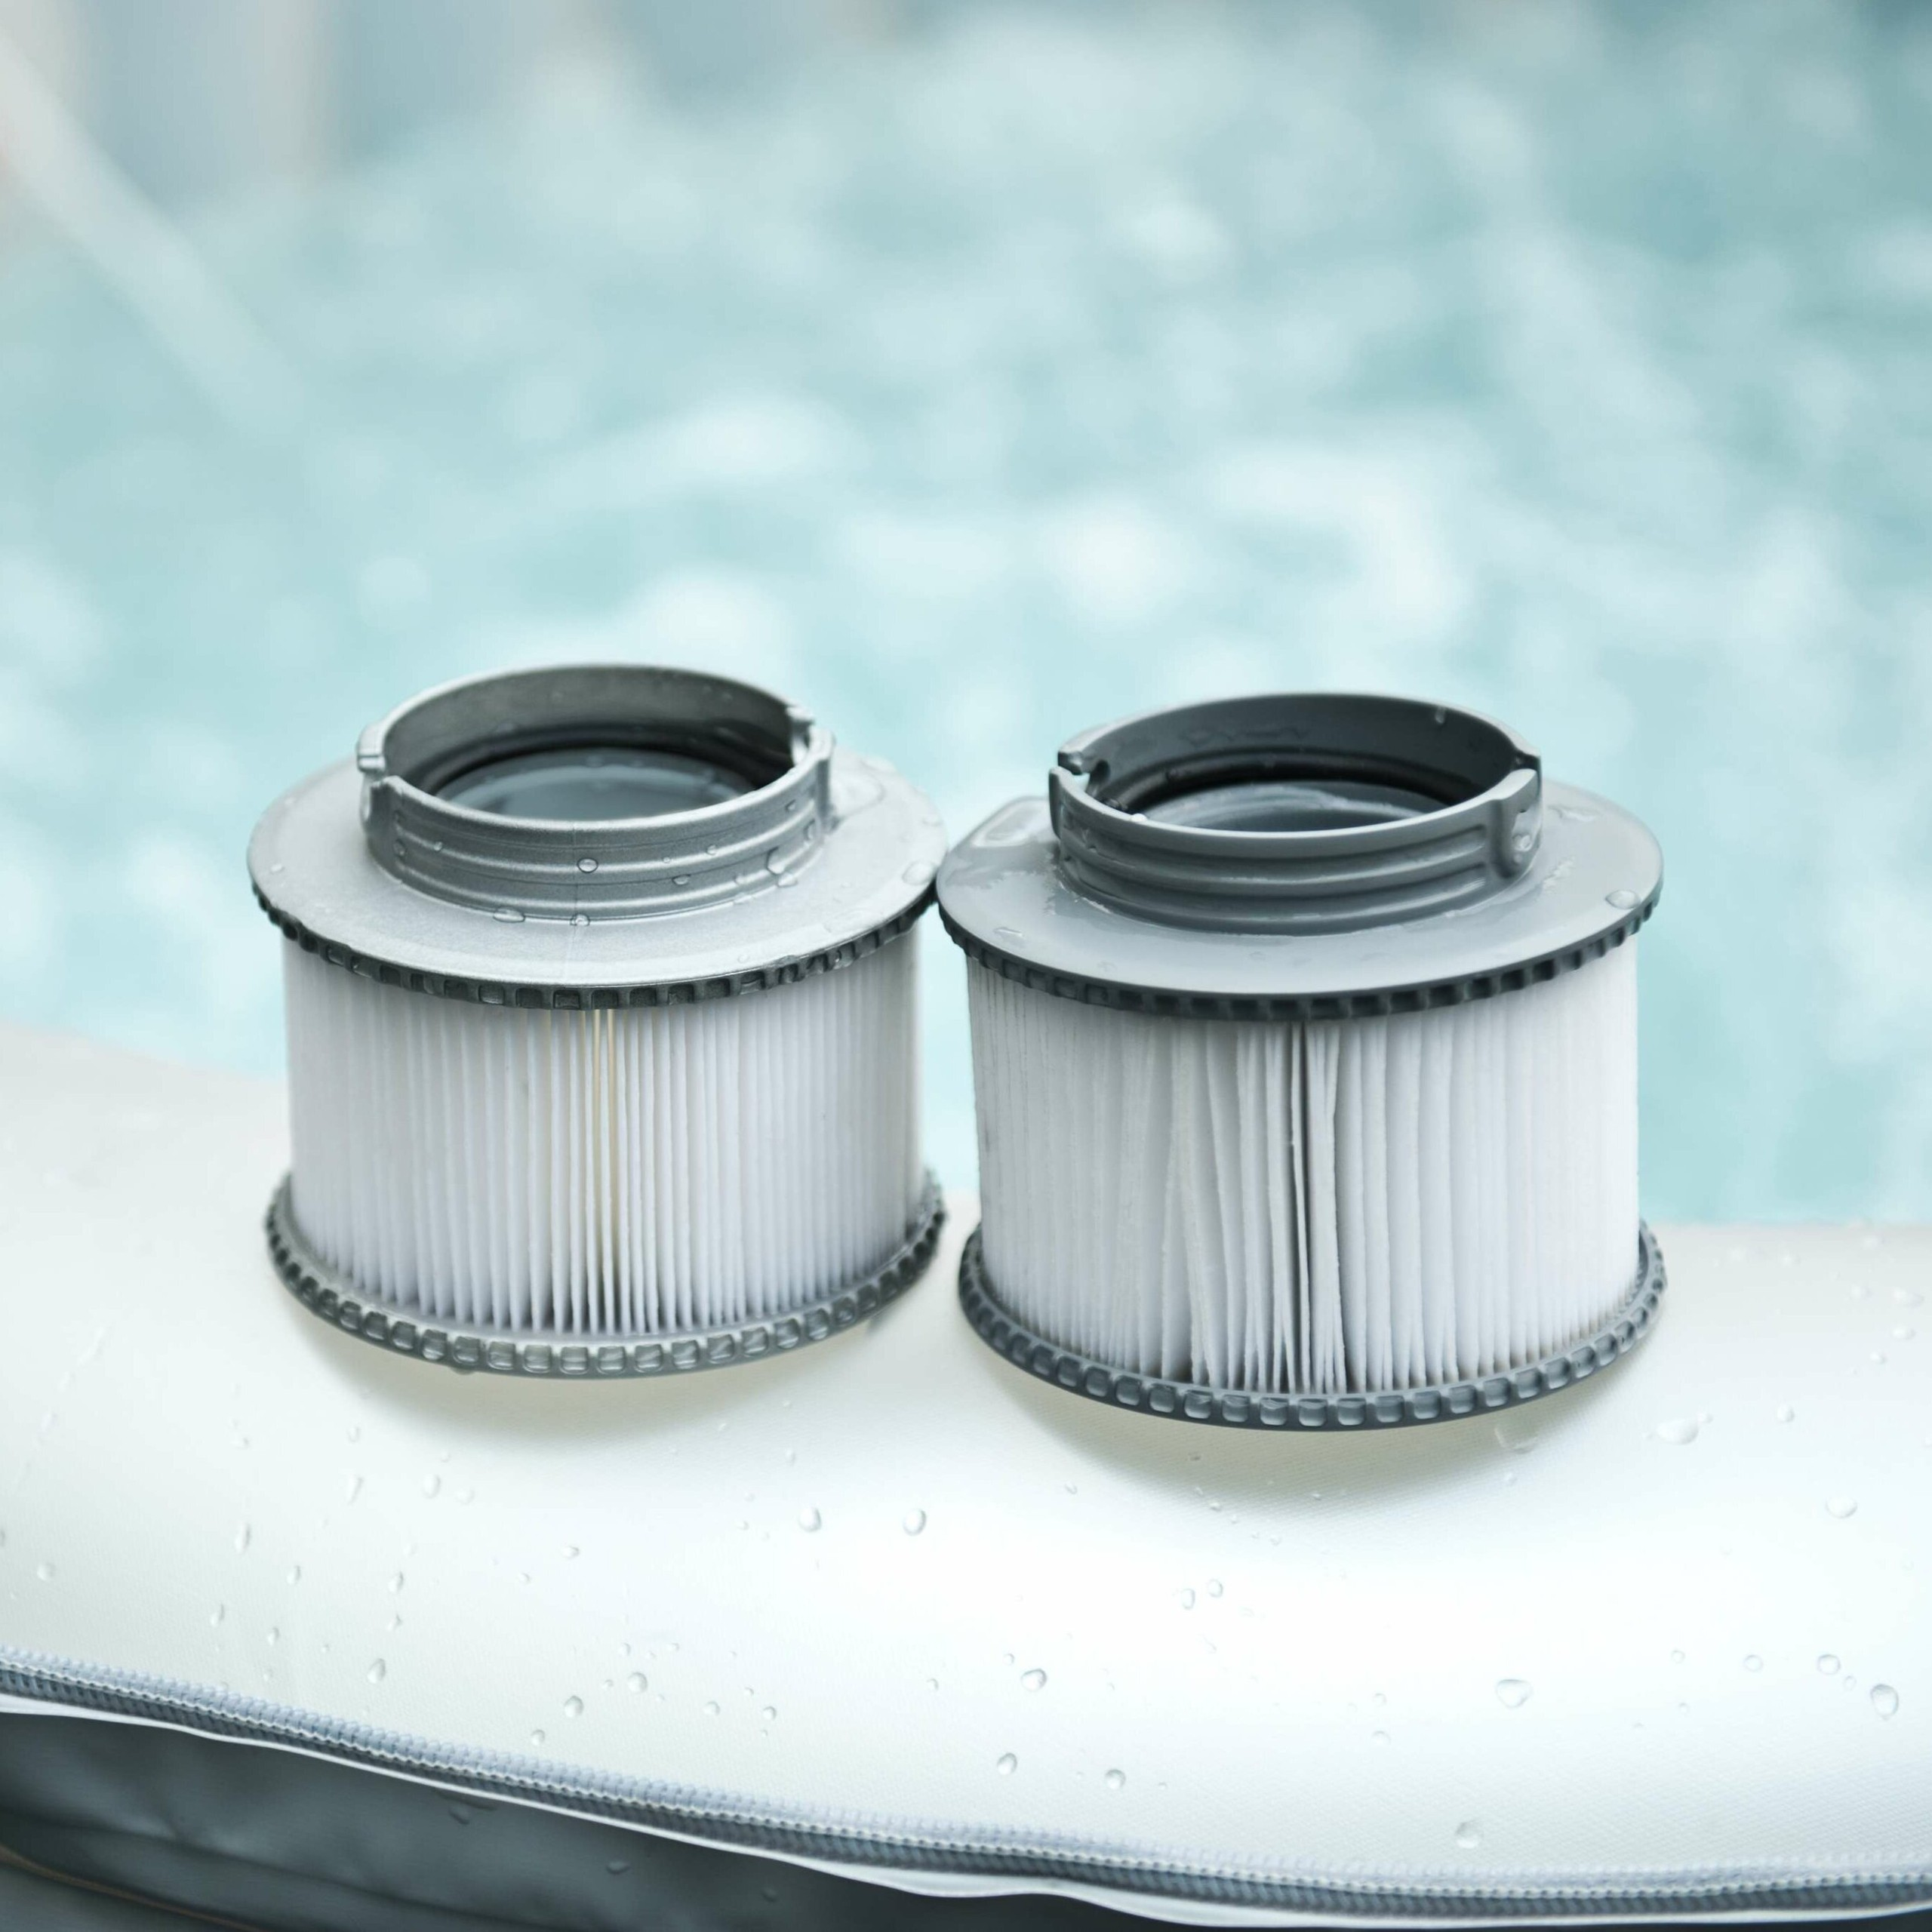 Inflatable Spa Filter Cartridge (Set of 2)